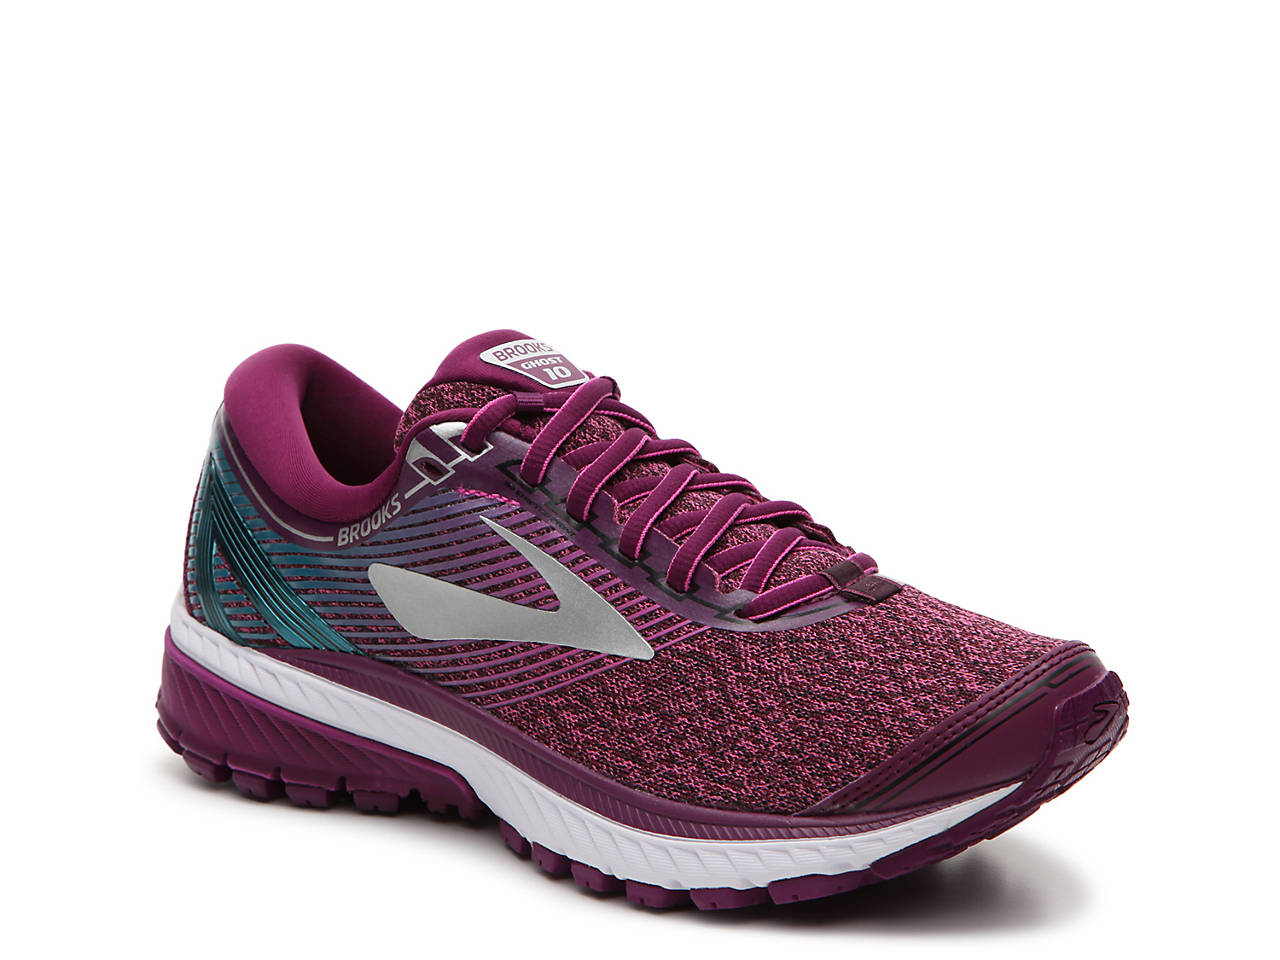 63ece805359 Brooks Ghost 10 Running Shoe - Women s Women s Shoes